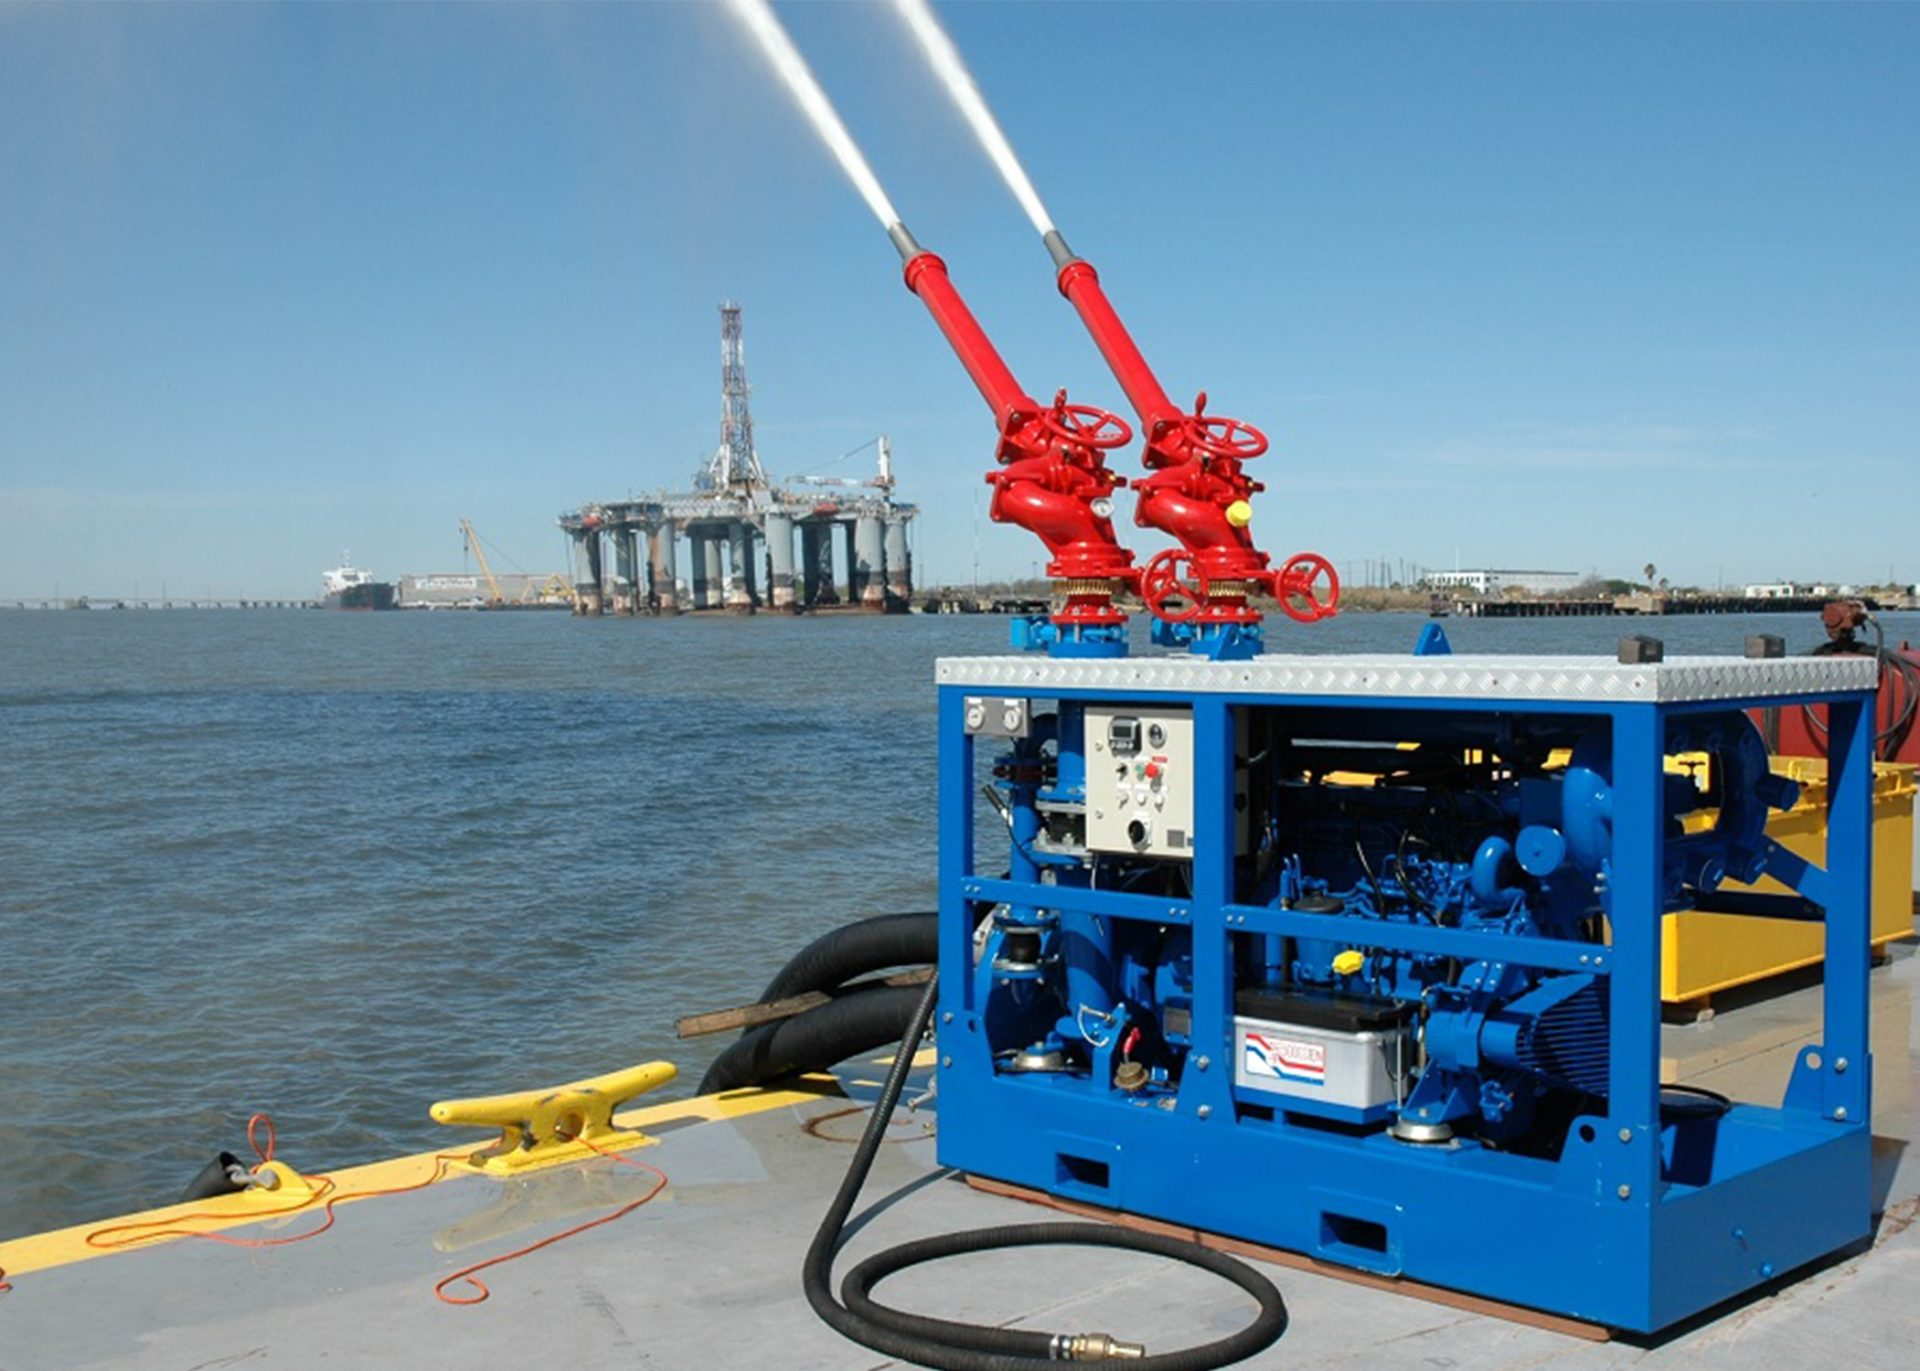 Hydrodiesel Marine Fire Fighting Portable Solutions